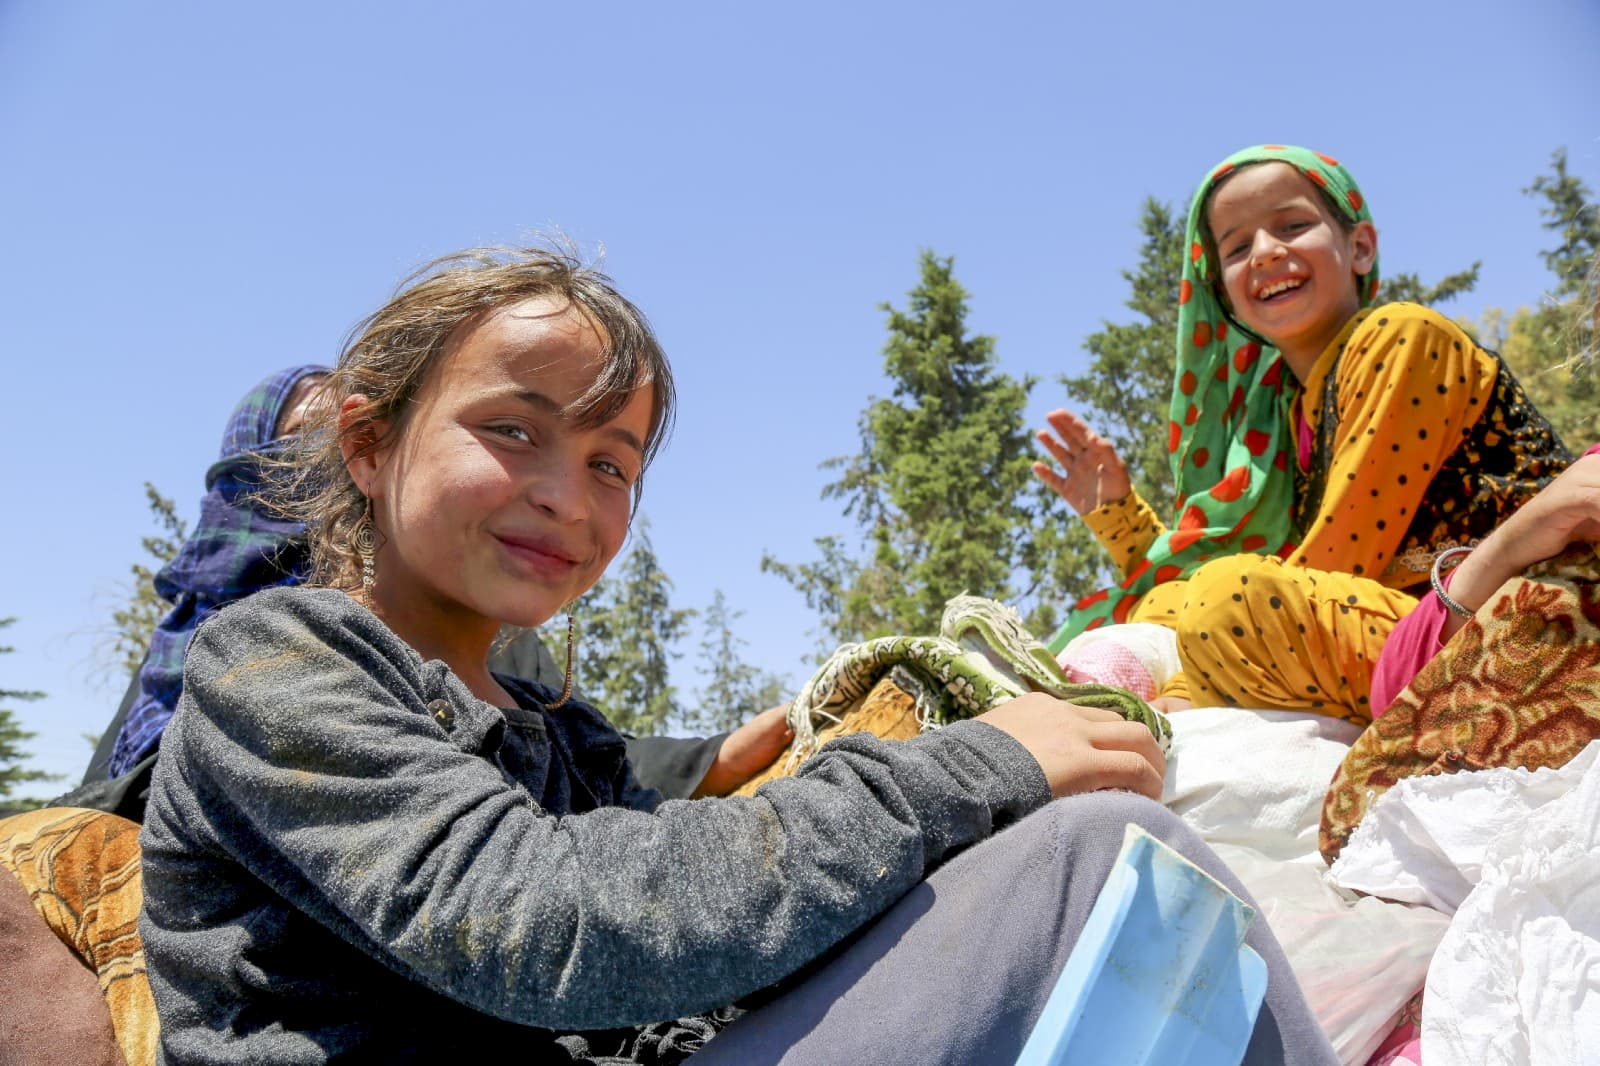 Hiba, 12, and her family in Ain Issa camp